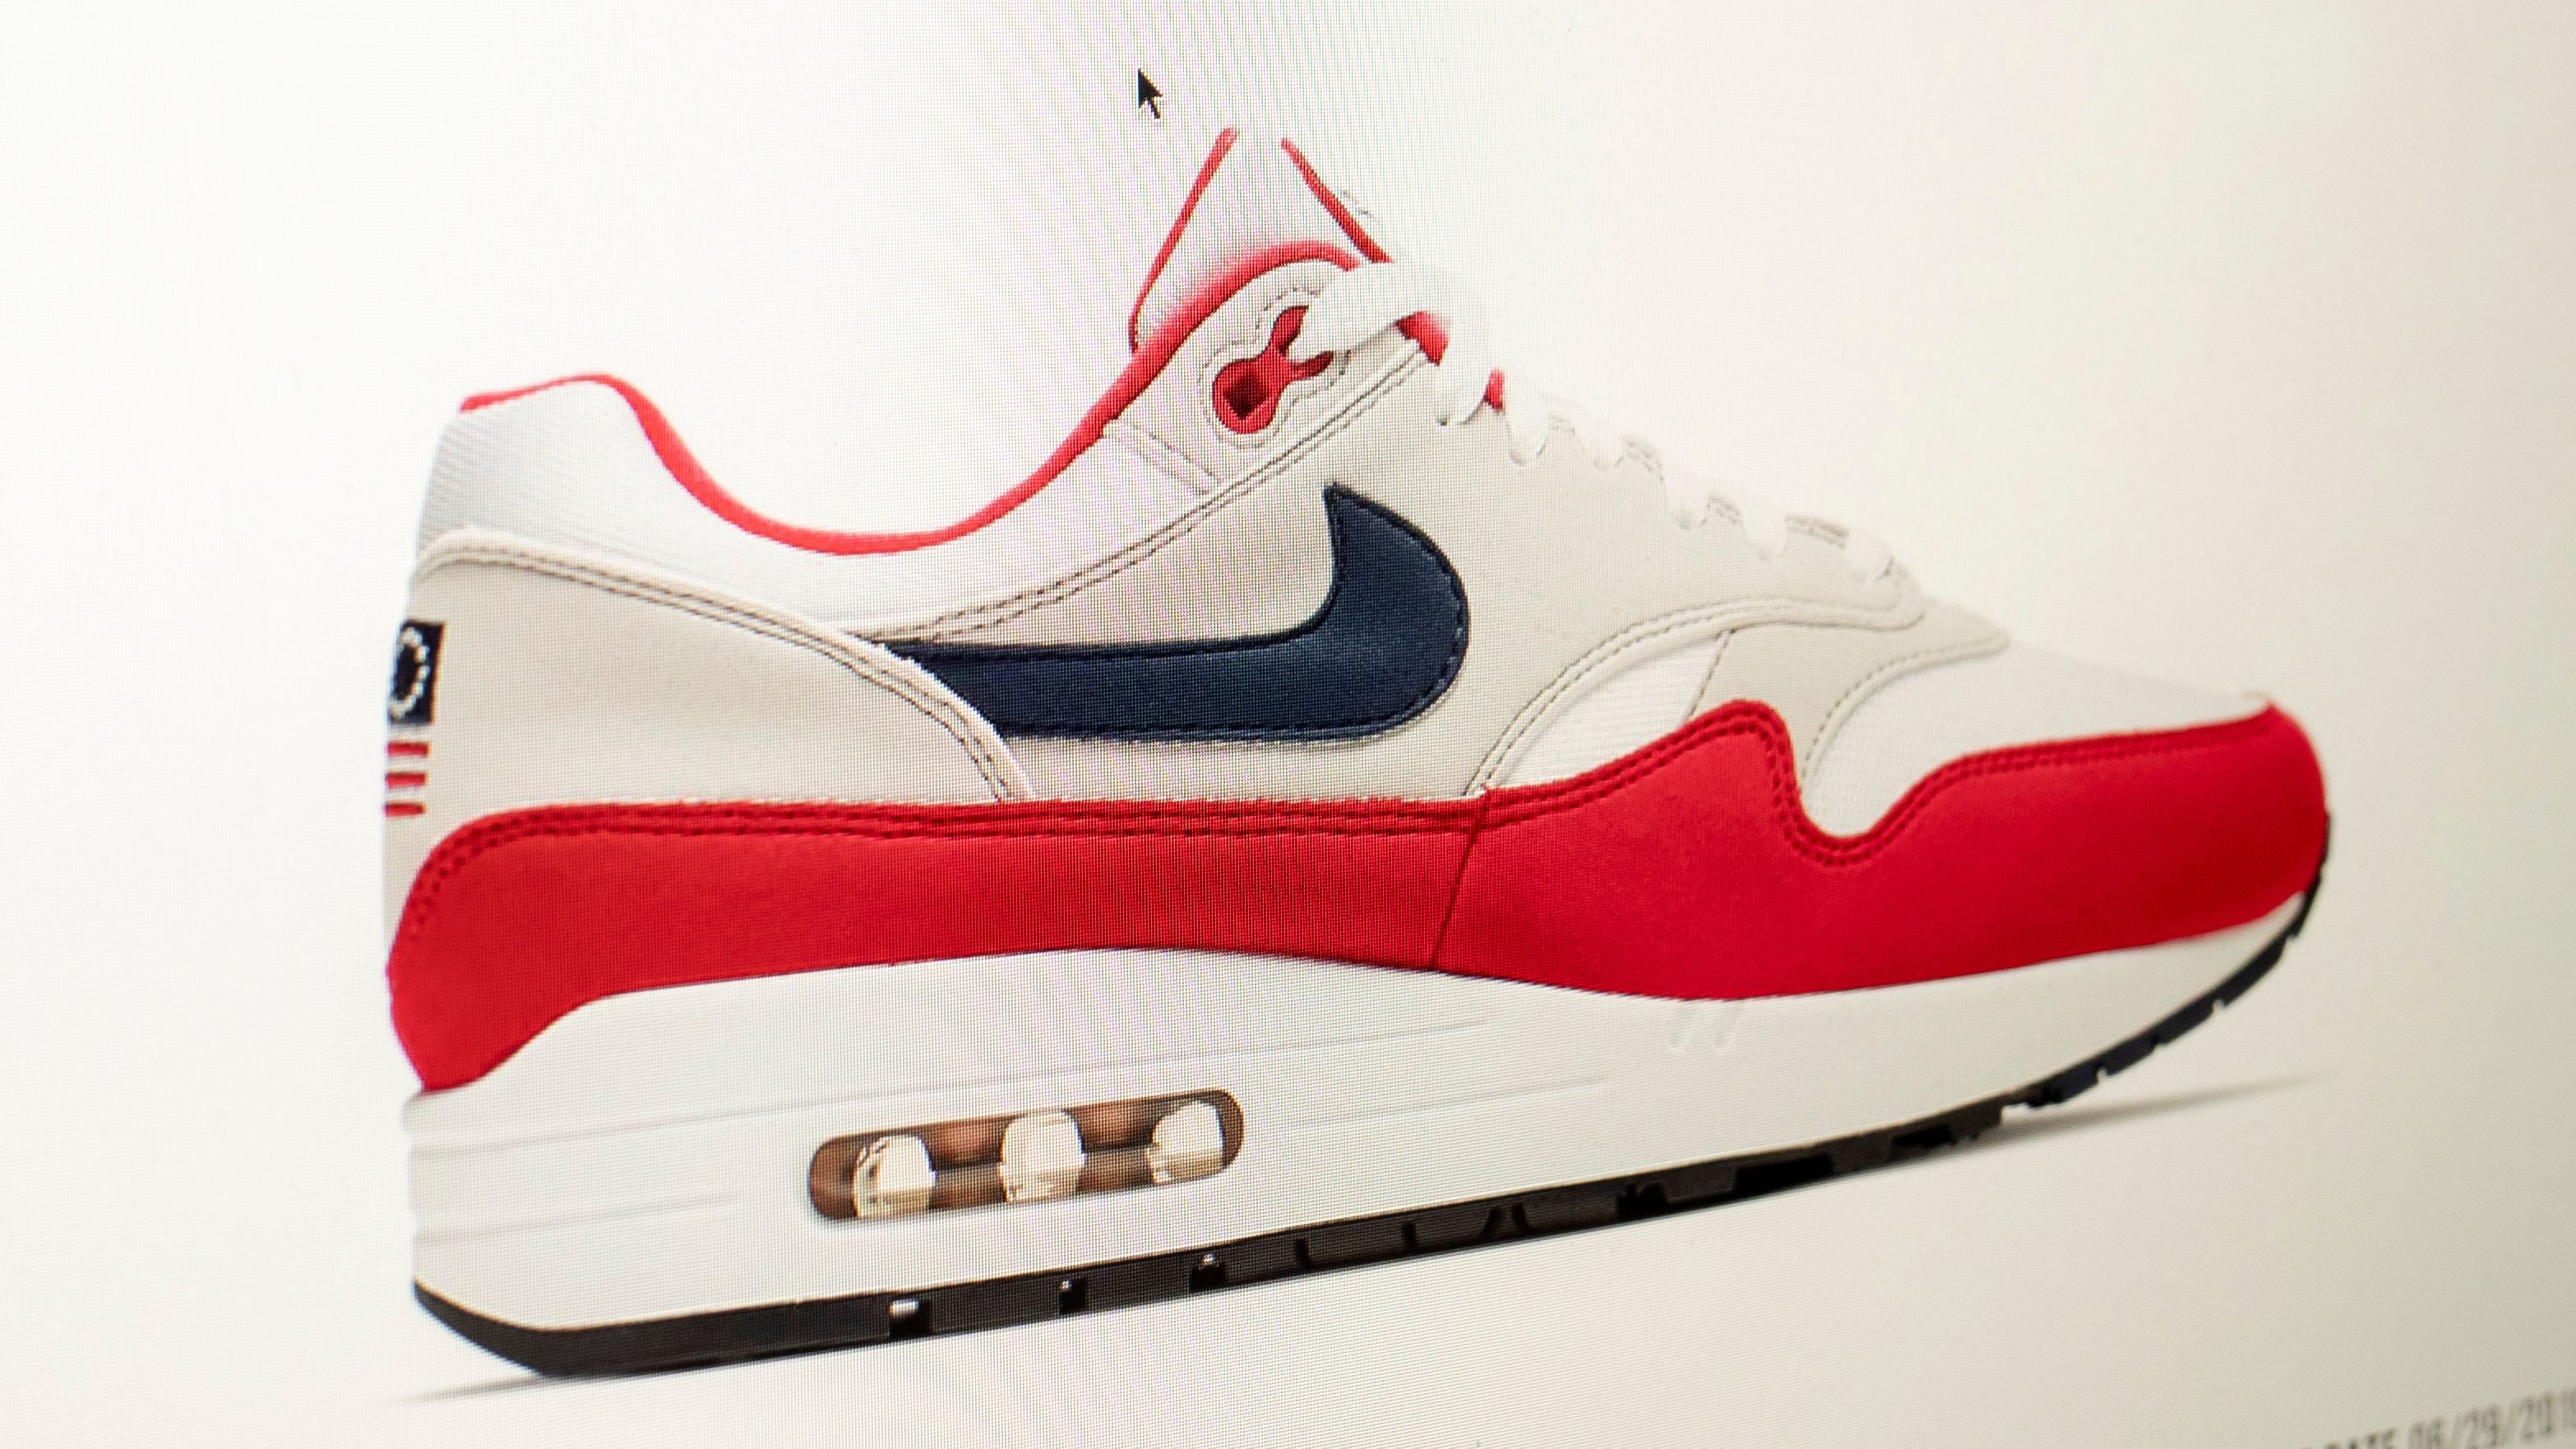 6940248d ... of its new July 4-themed Air Max 1 sneakers, over concerns about its  Betsy Ross flag logo. Prices for the shoes rocketed on the website StockX.com,  ...